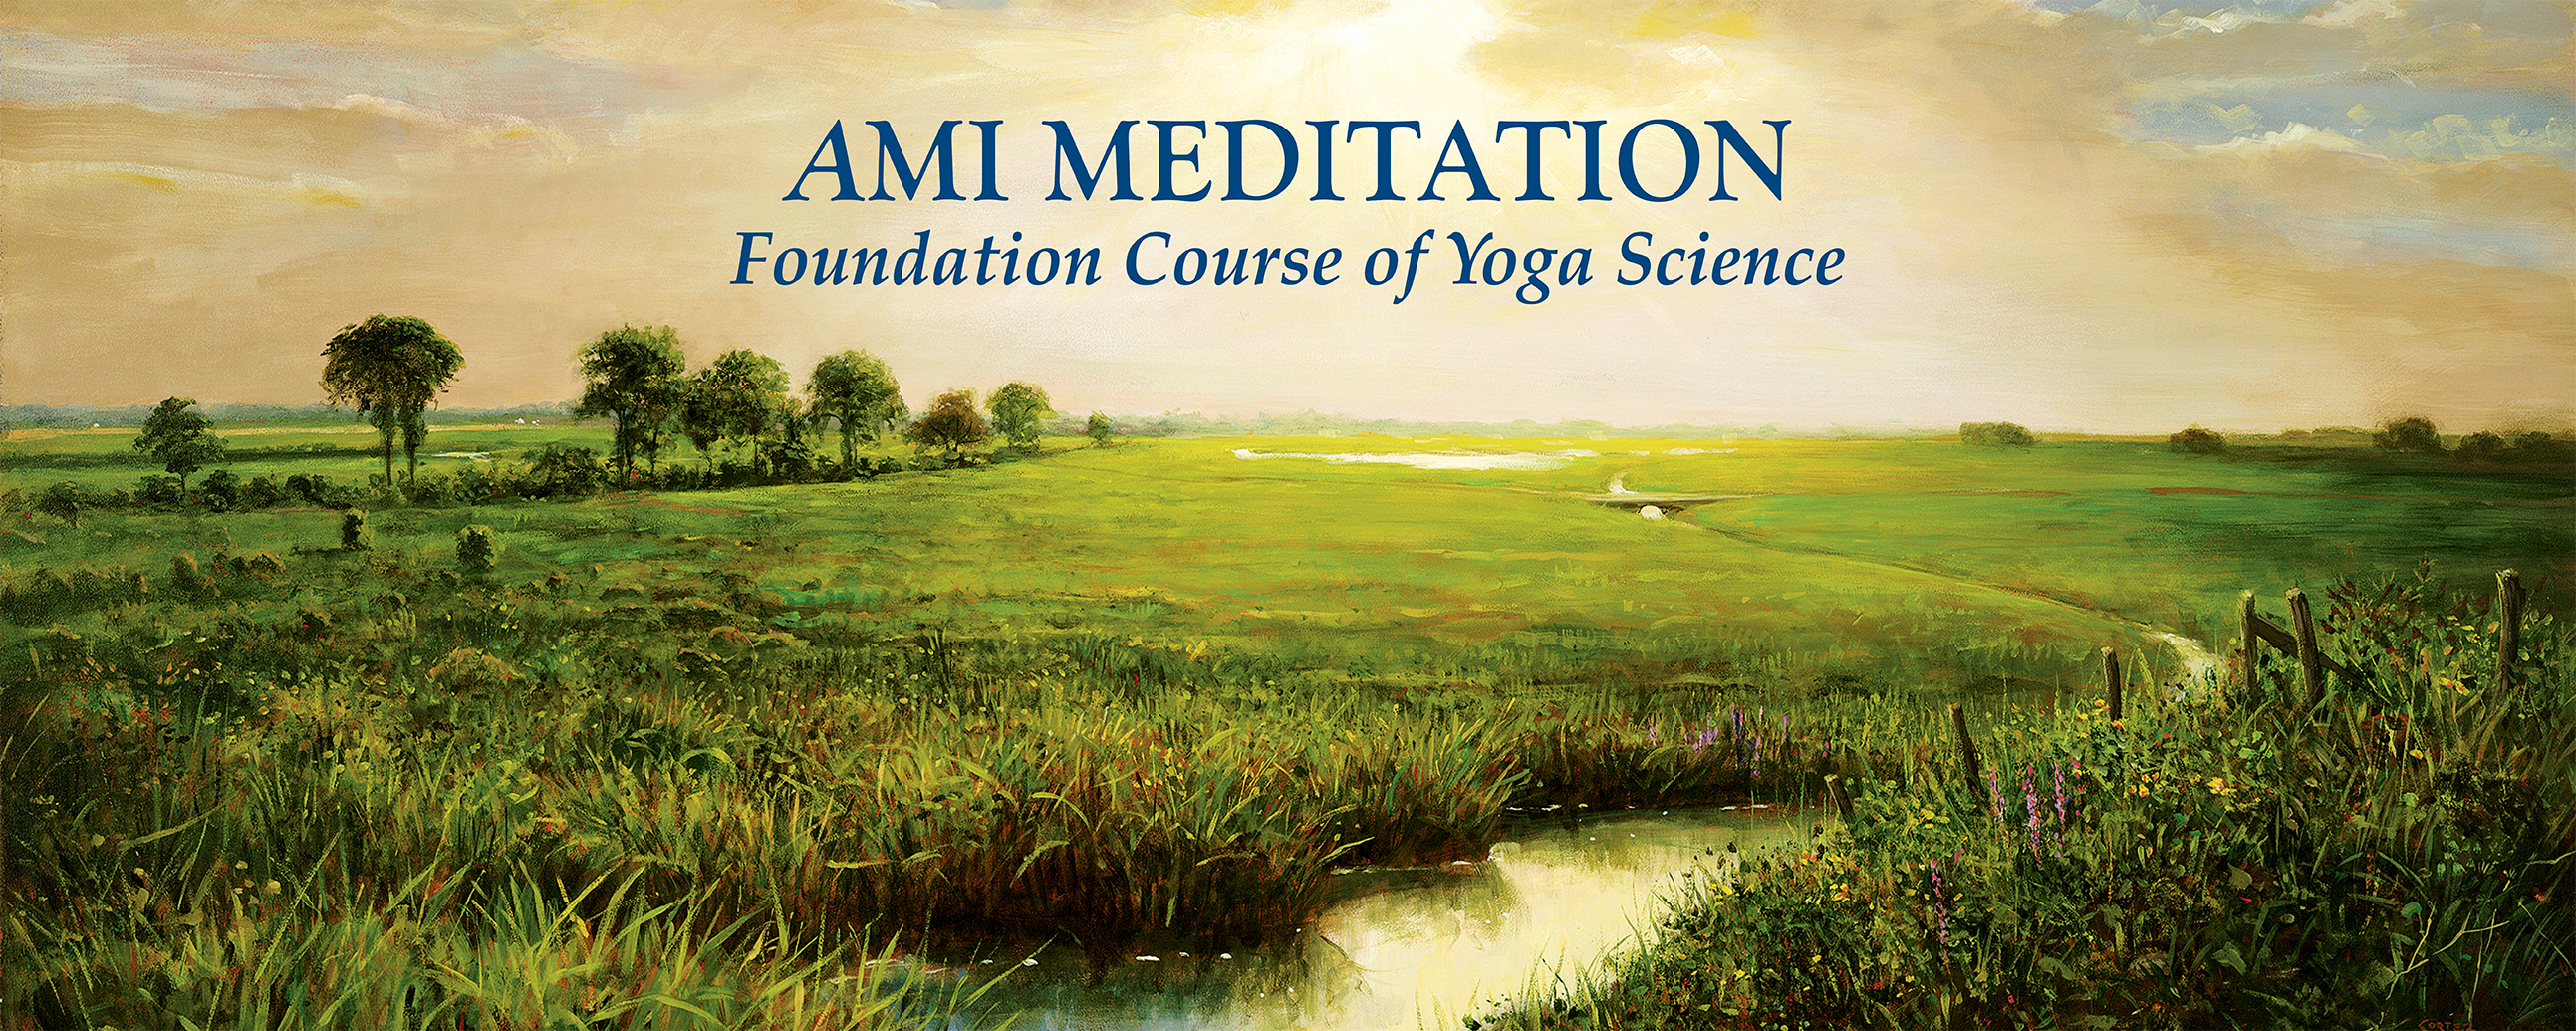 AMI Meditation Foundation Course of Yoga Science